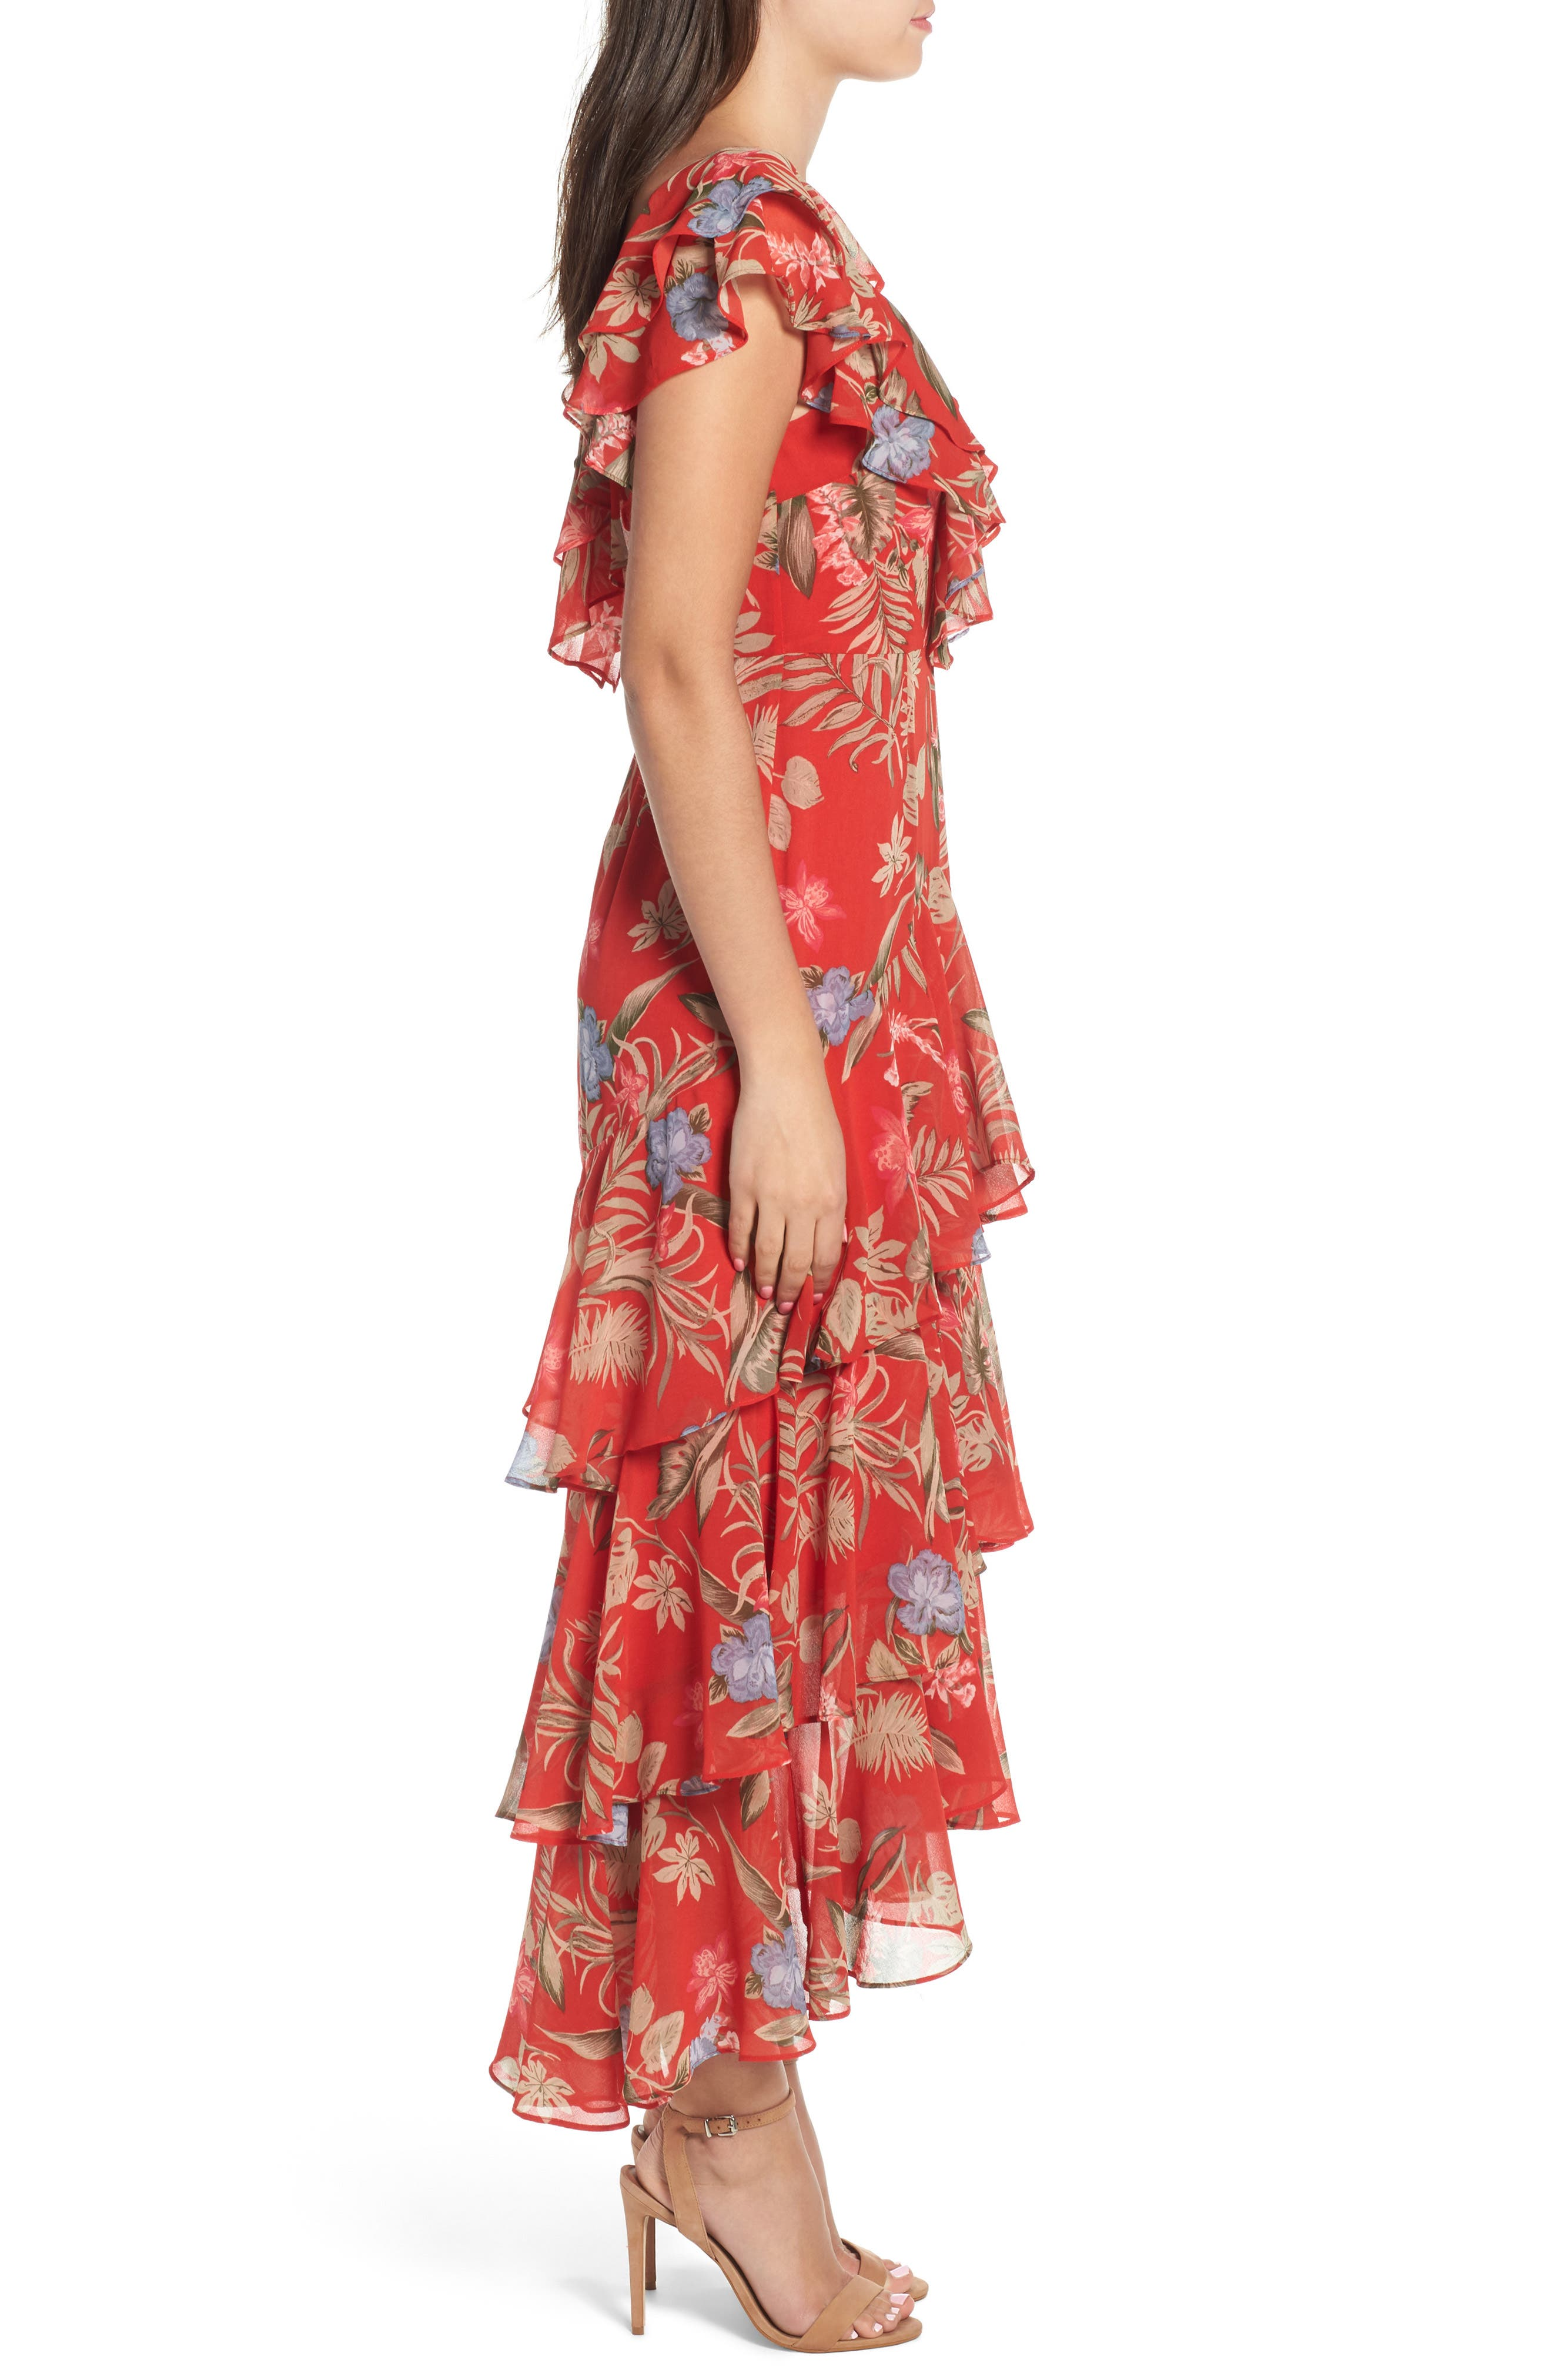 Chelsea Tiered Ruffle Maxi Dress,                             Alternate thumbnail 3, color,                             Red Tropical